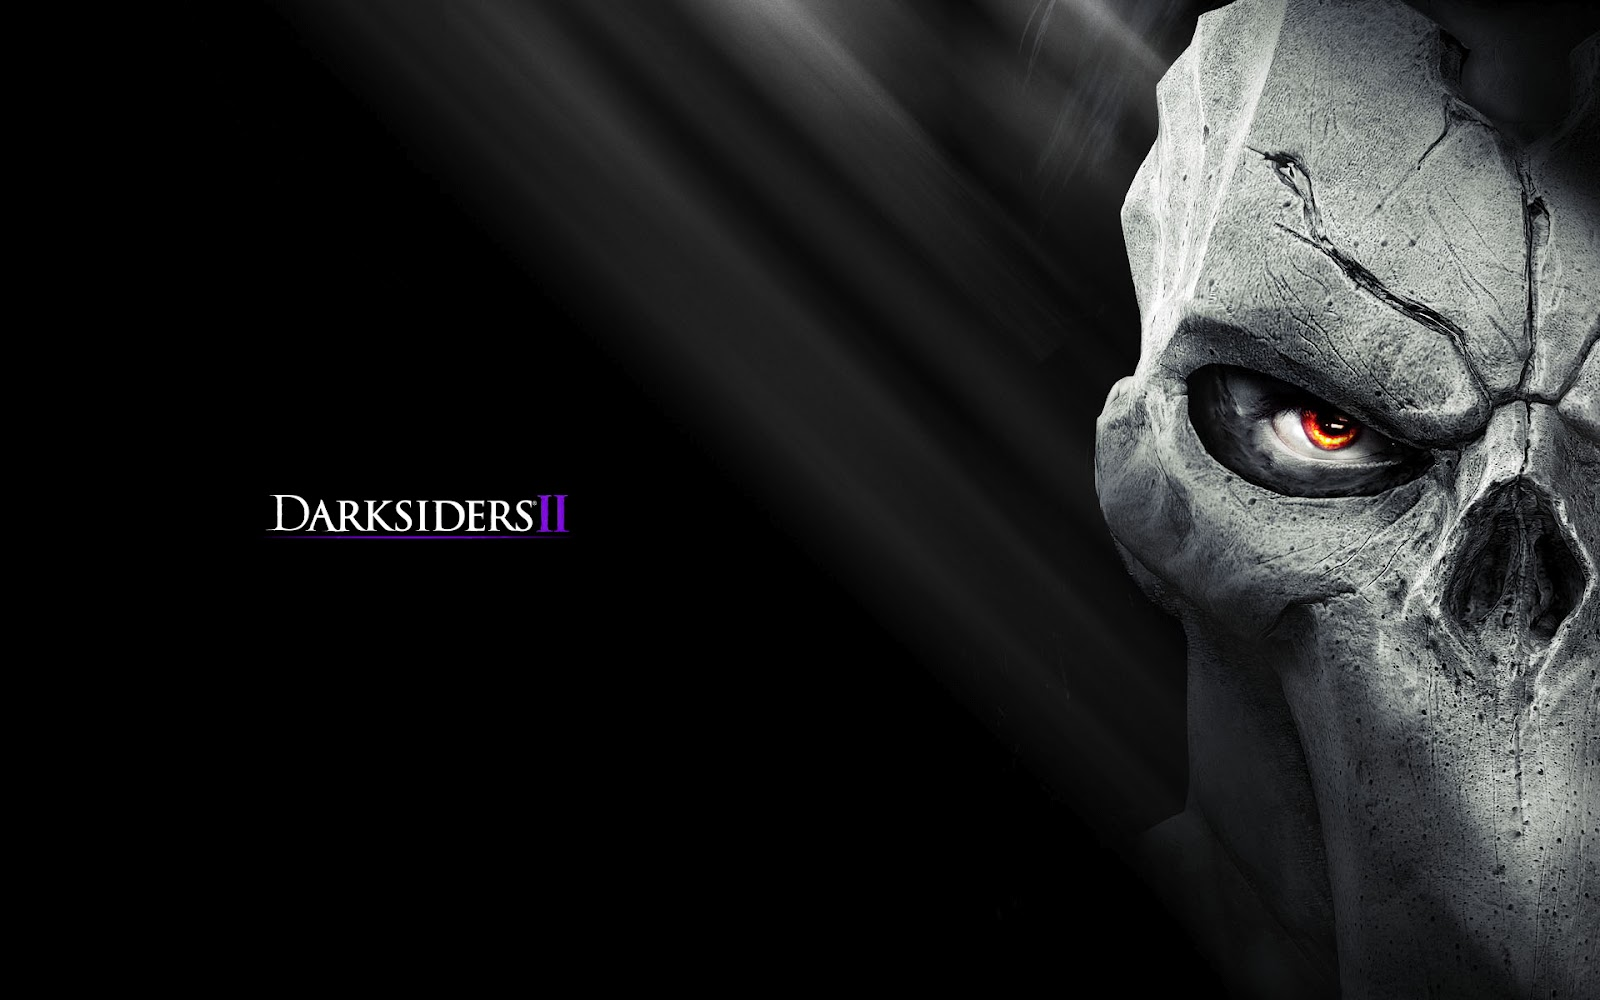 how to use wrath potion in darksiders 2